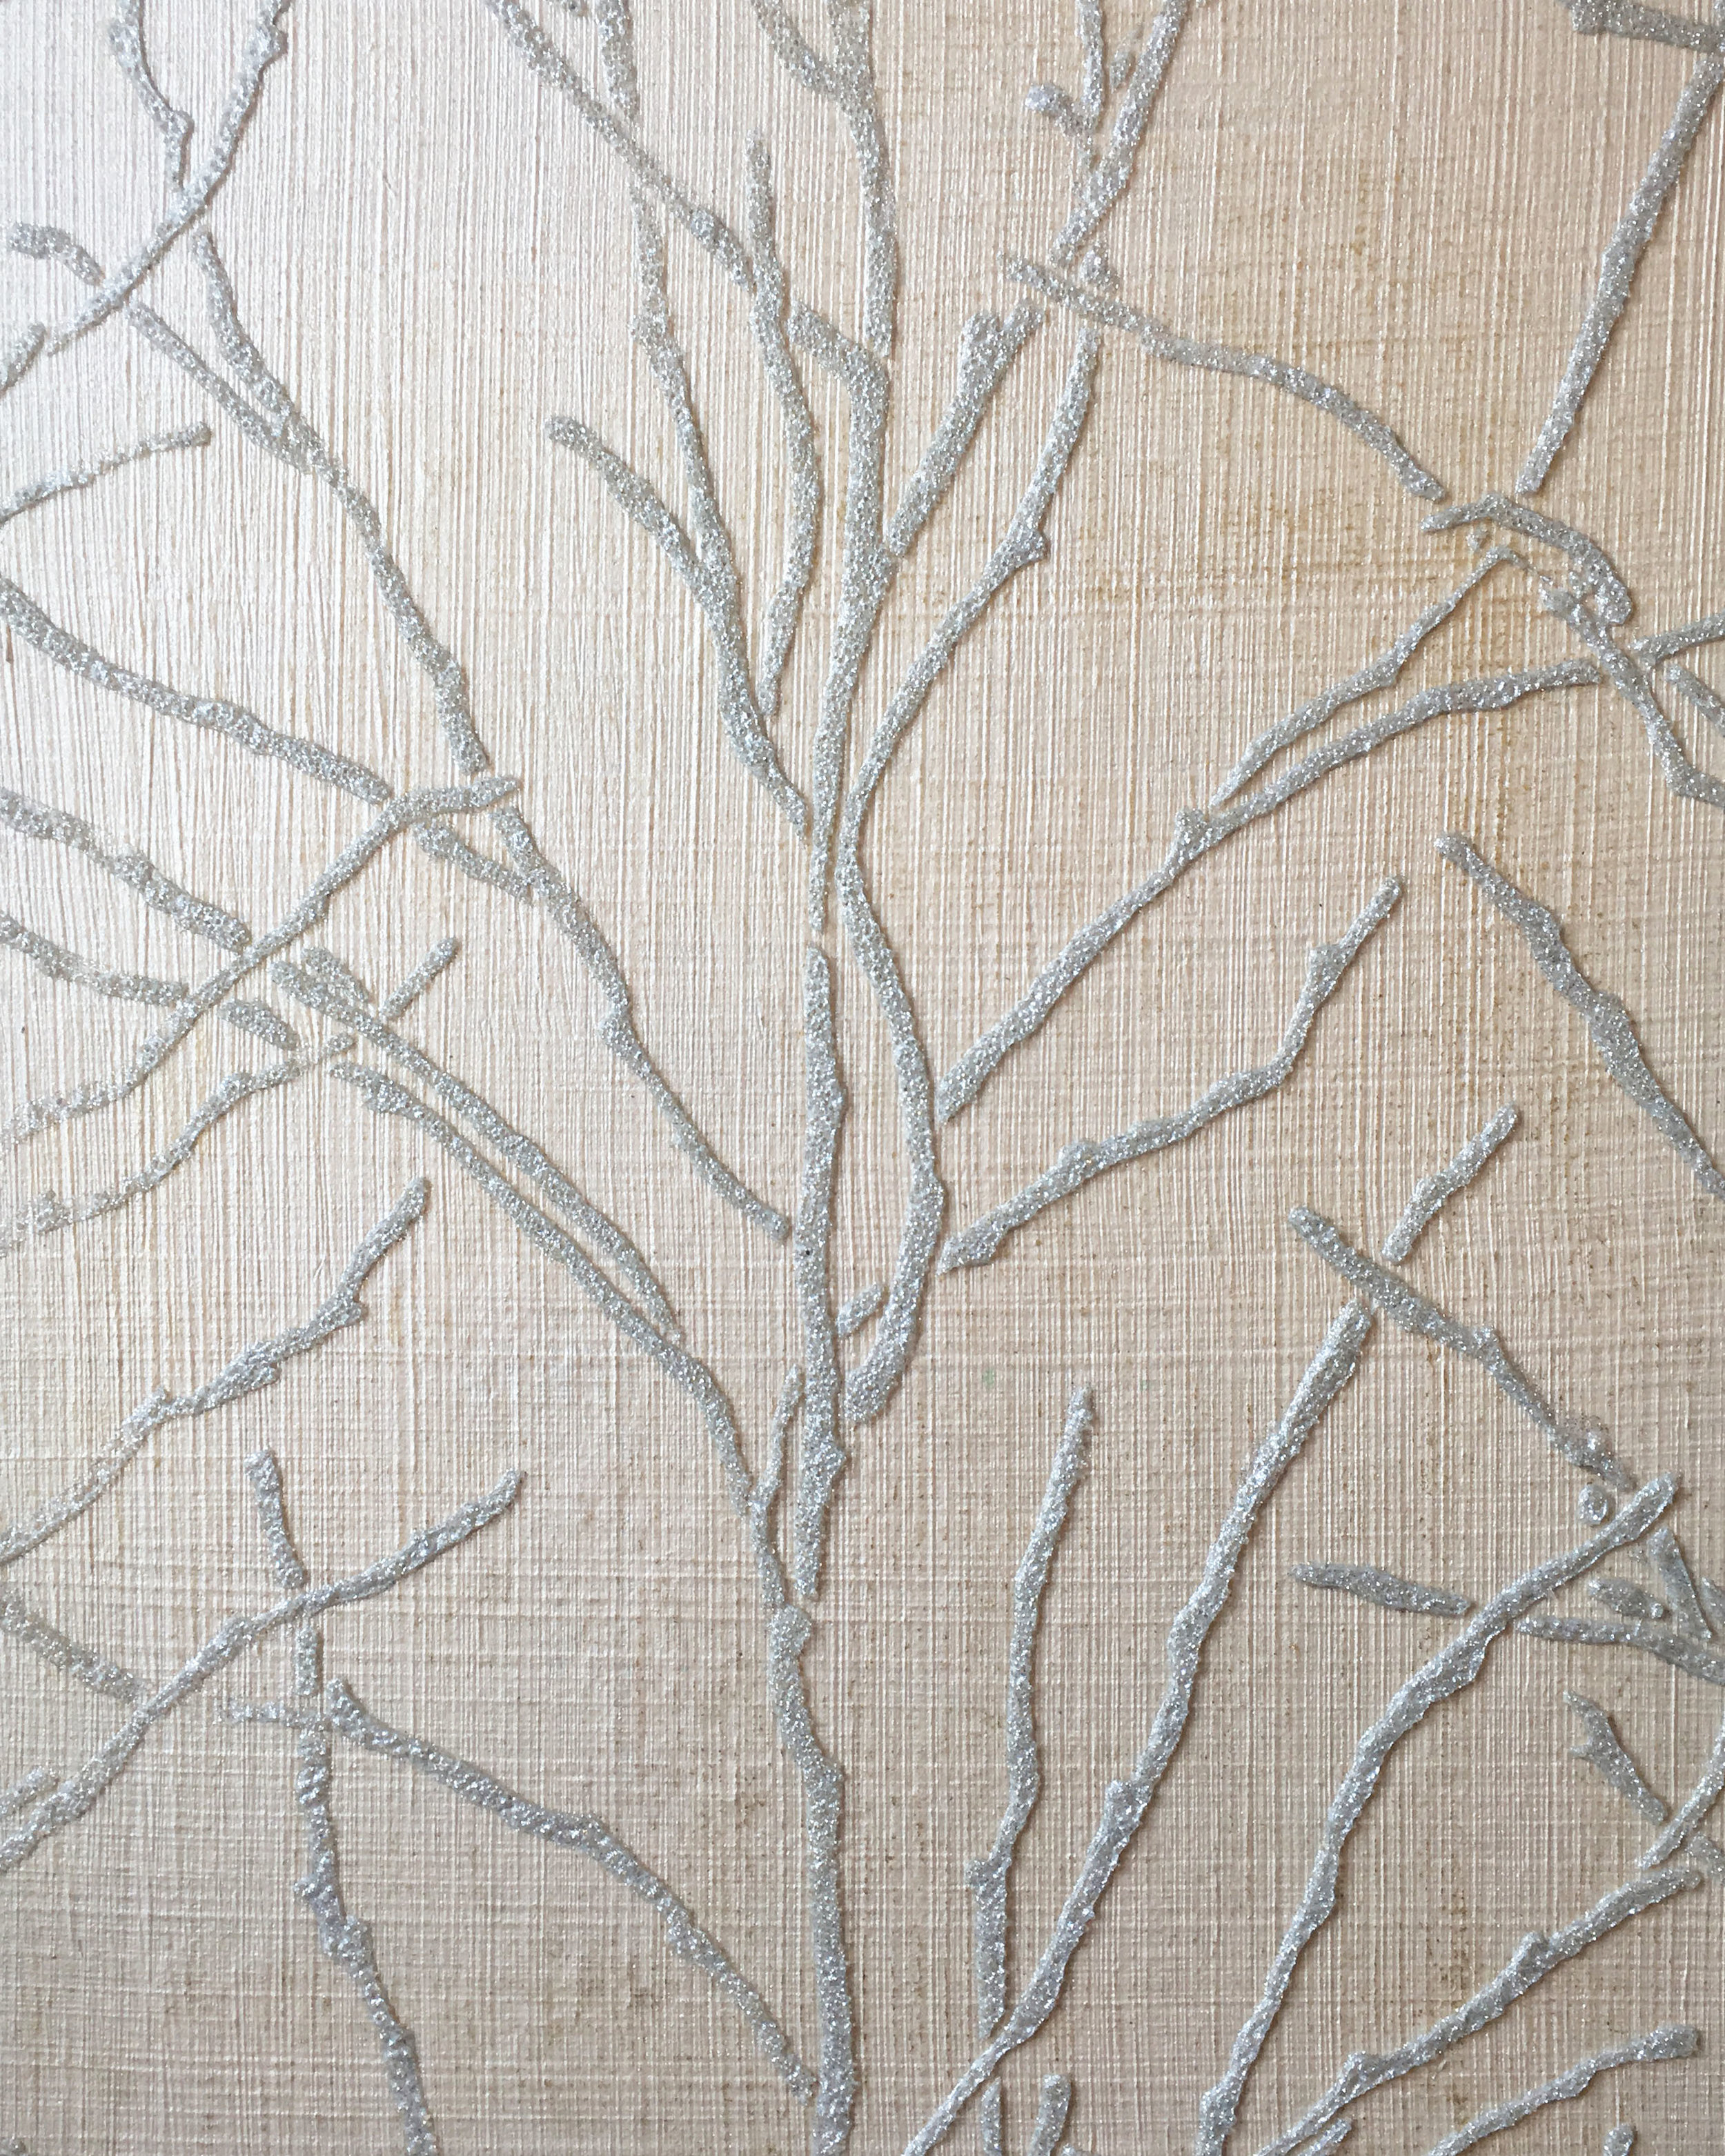 Textured ground with glass beaded stencil